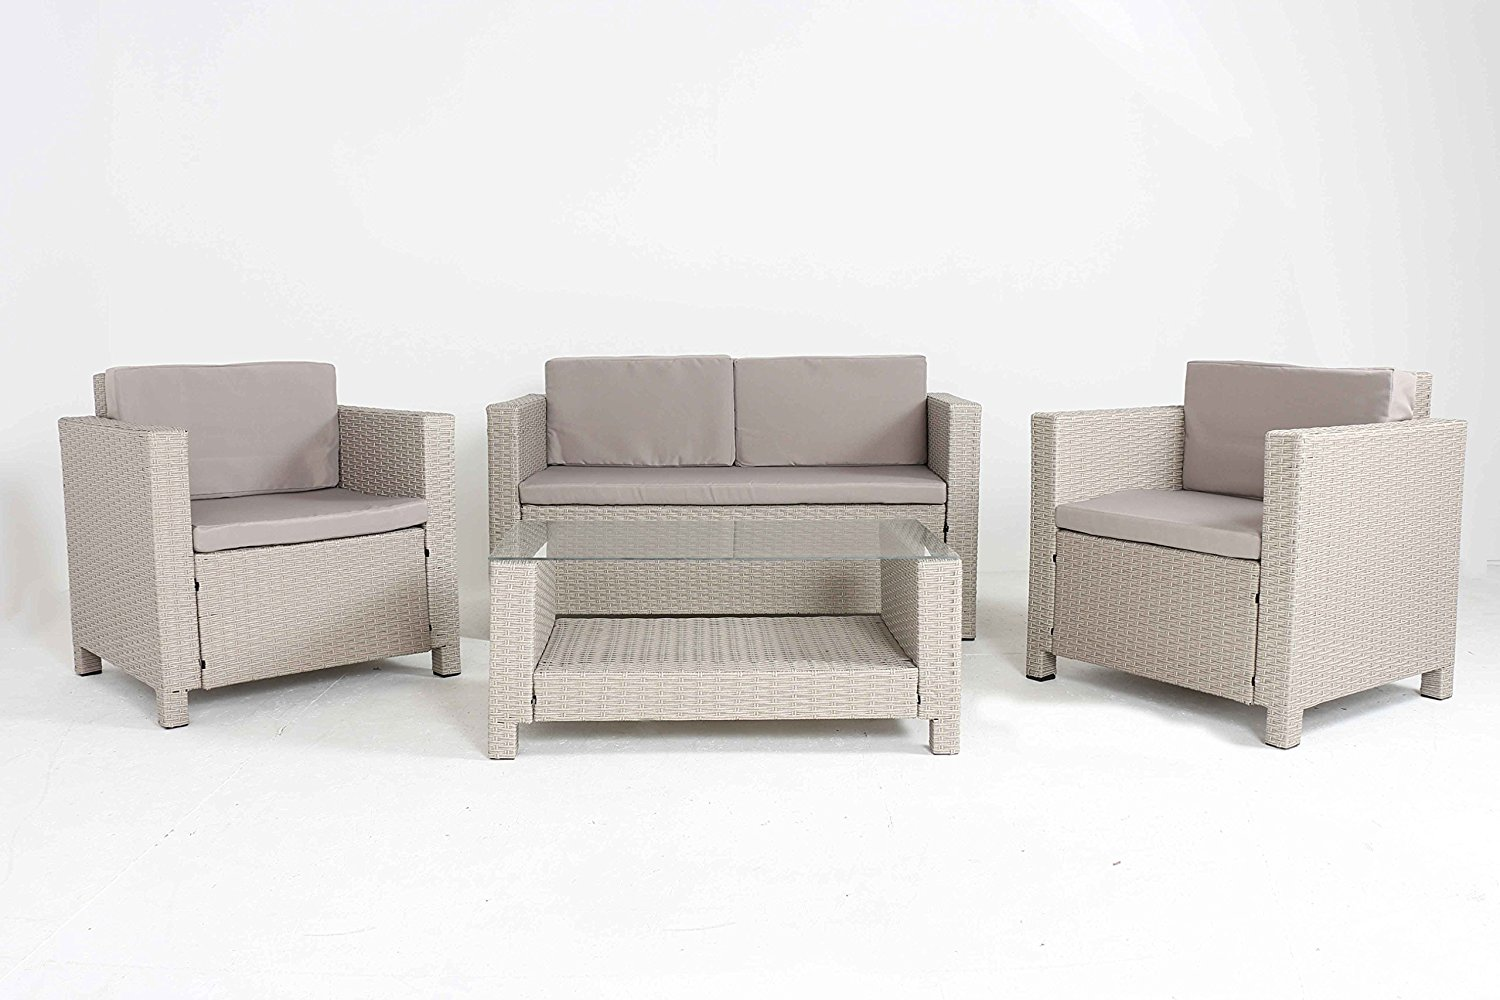 quality sofas for less sofa disposal large 4 pc modern beige rattan wiker set outdoor